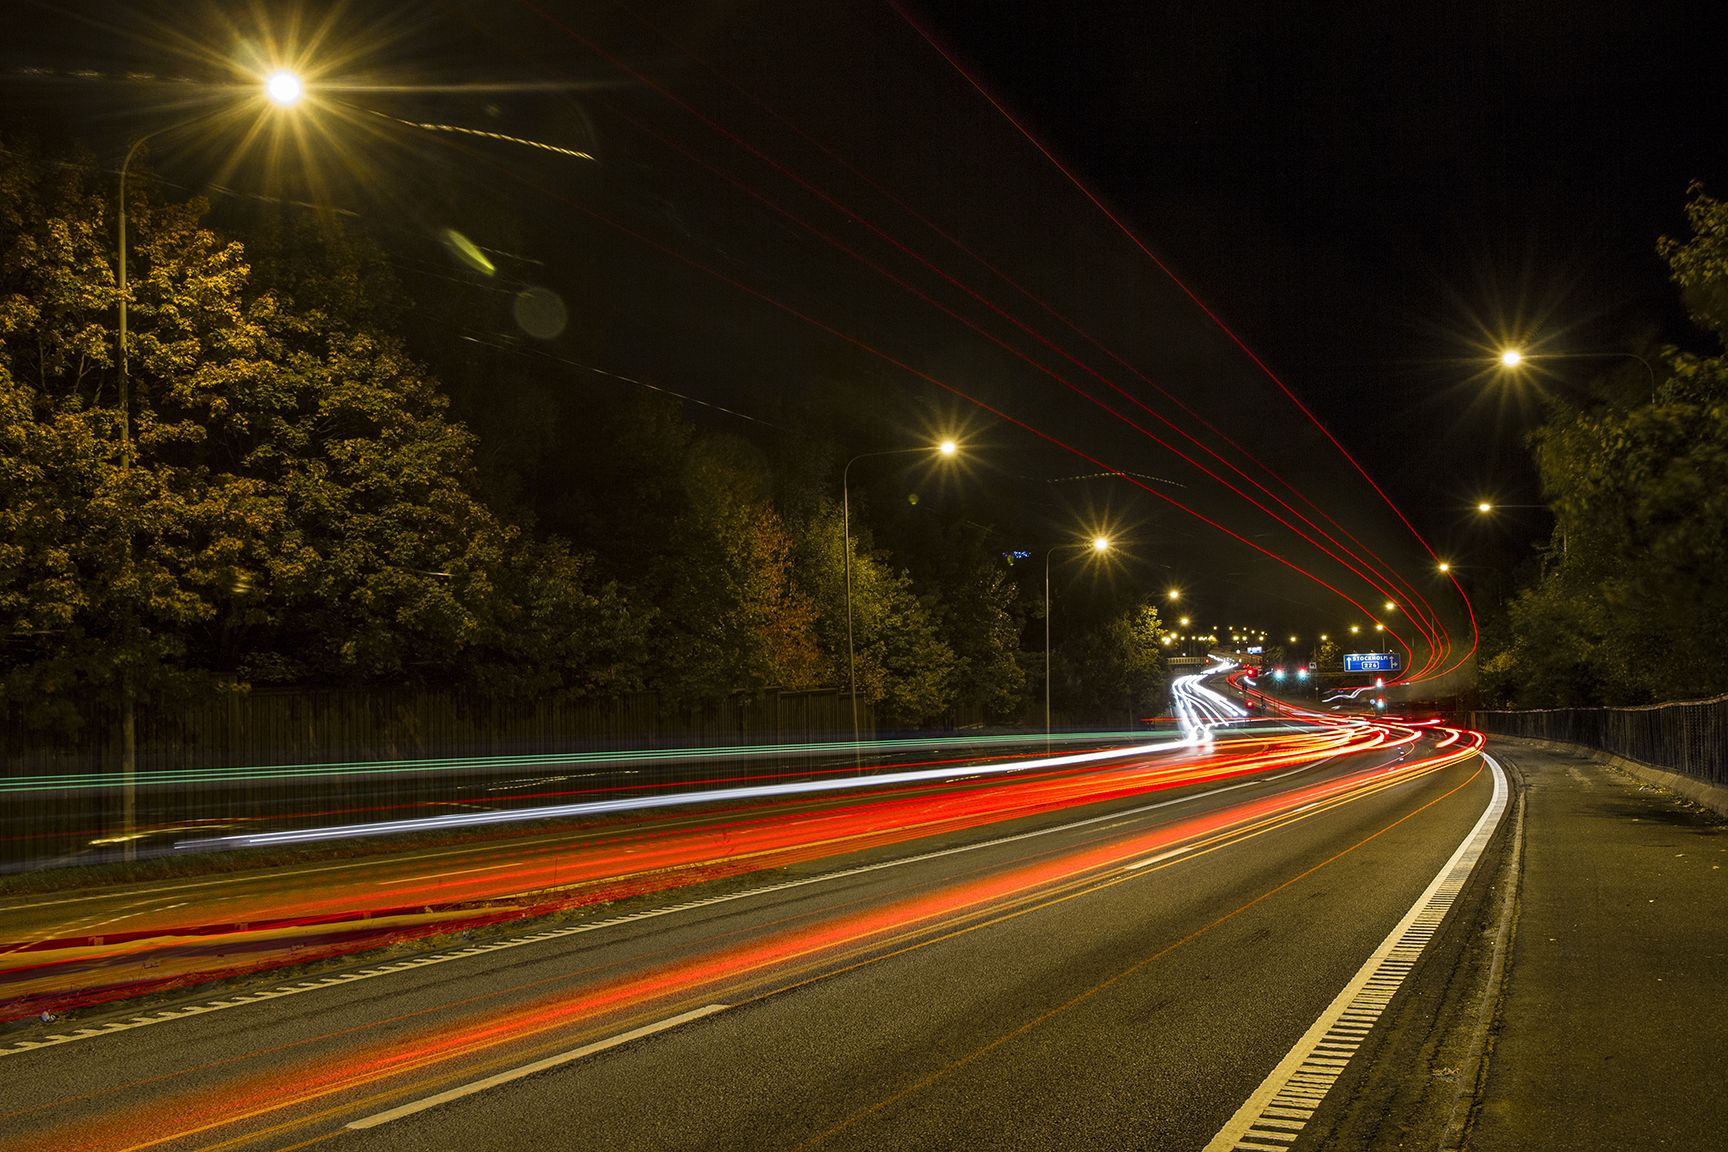 for me this long exposure and roads in night is like a trails of snakes